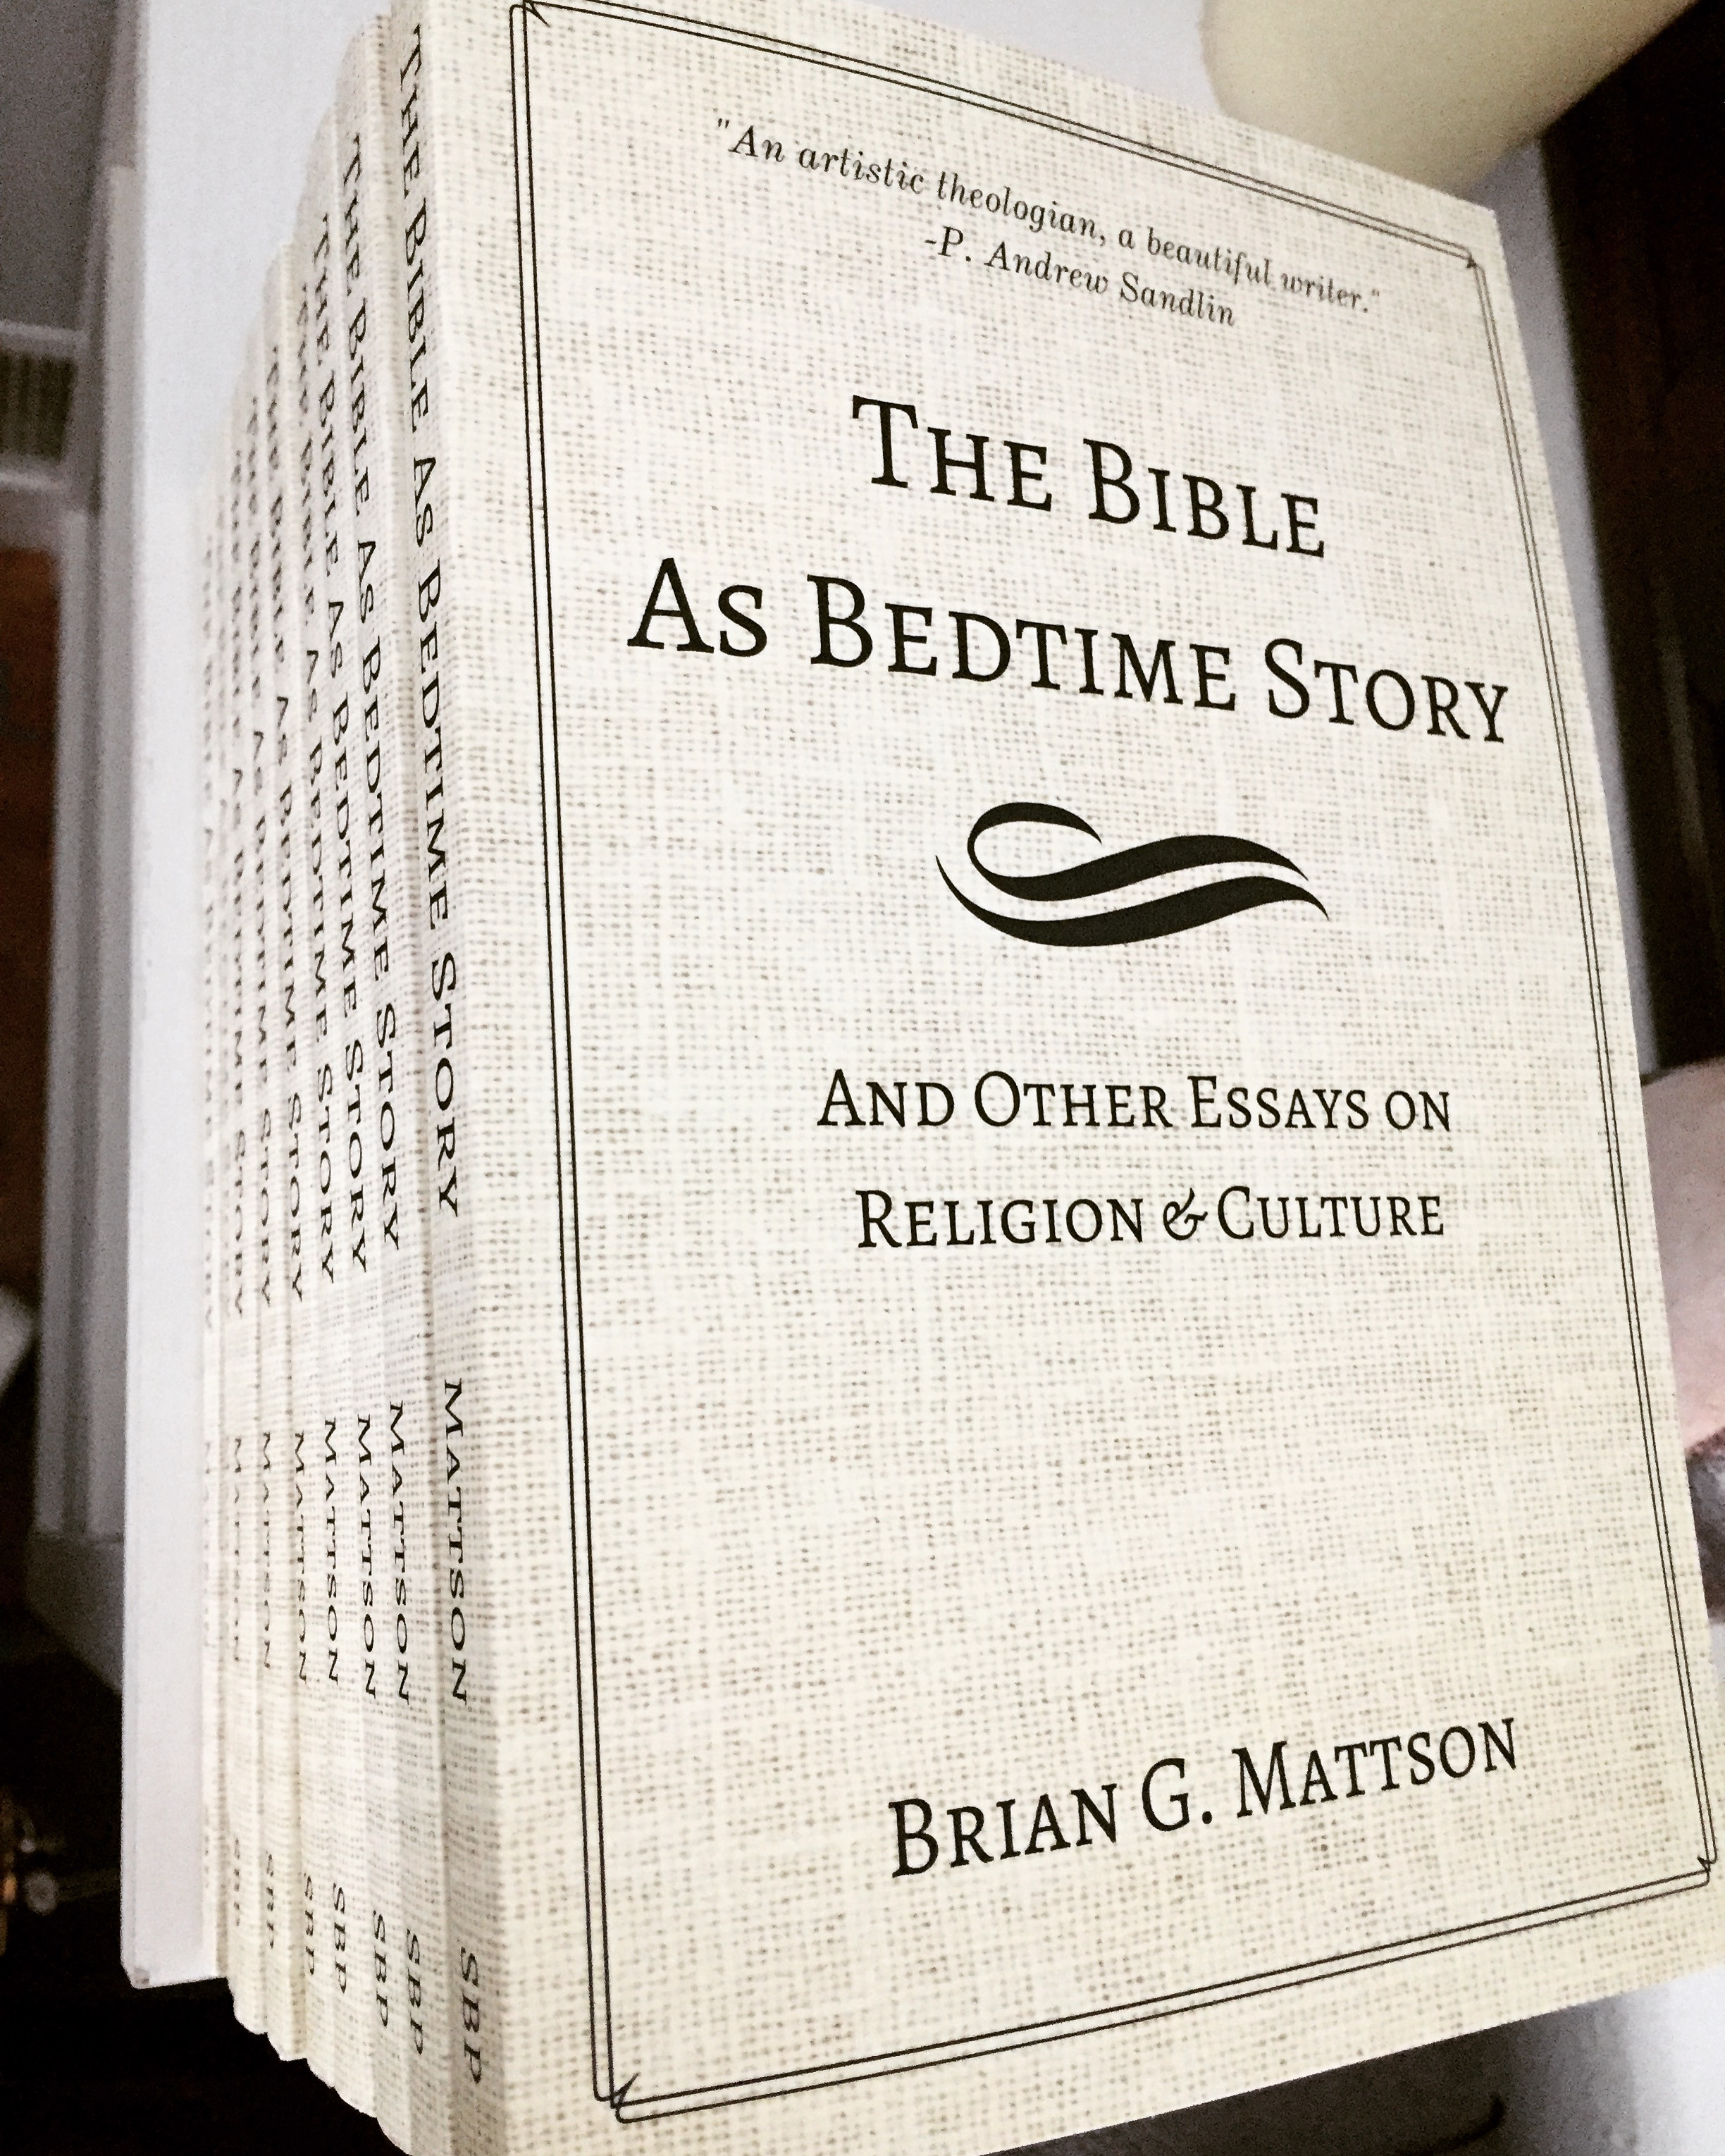 A collection of essays - Enjoy them one random chapter at a time, or have, as David Bahnsen calls it, a